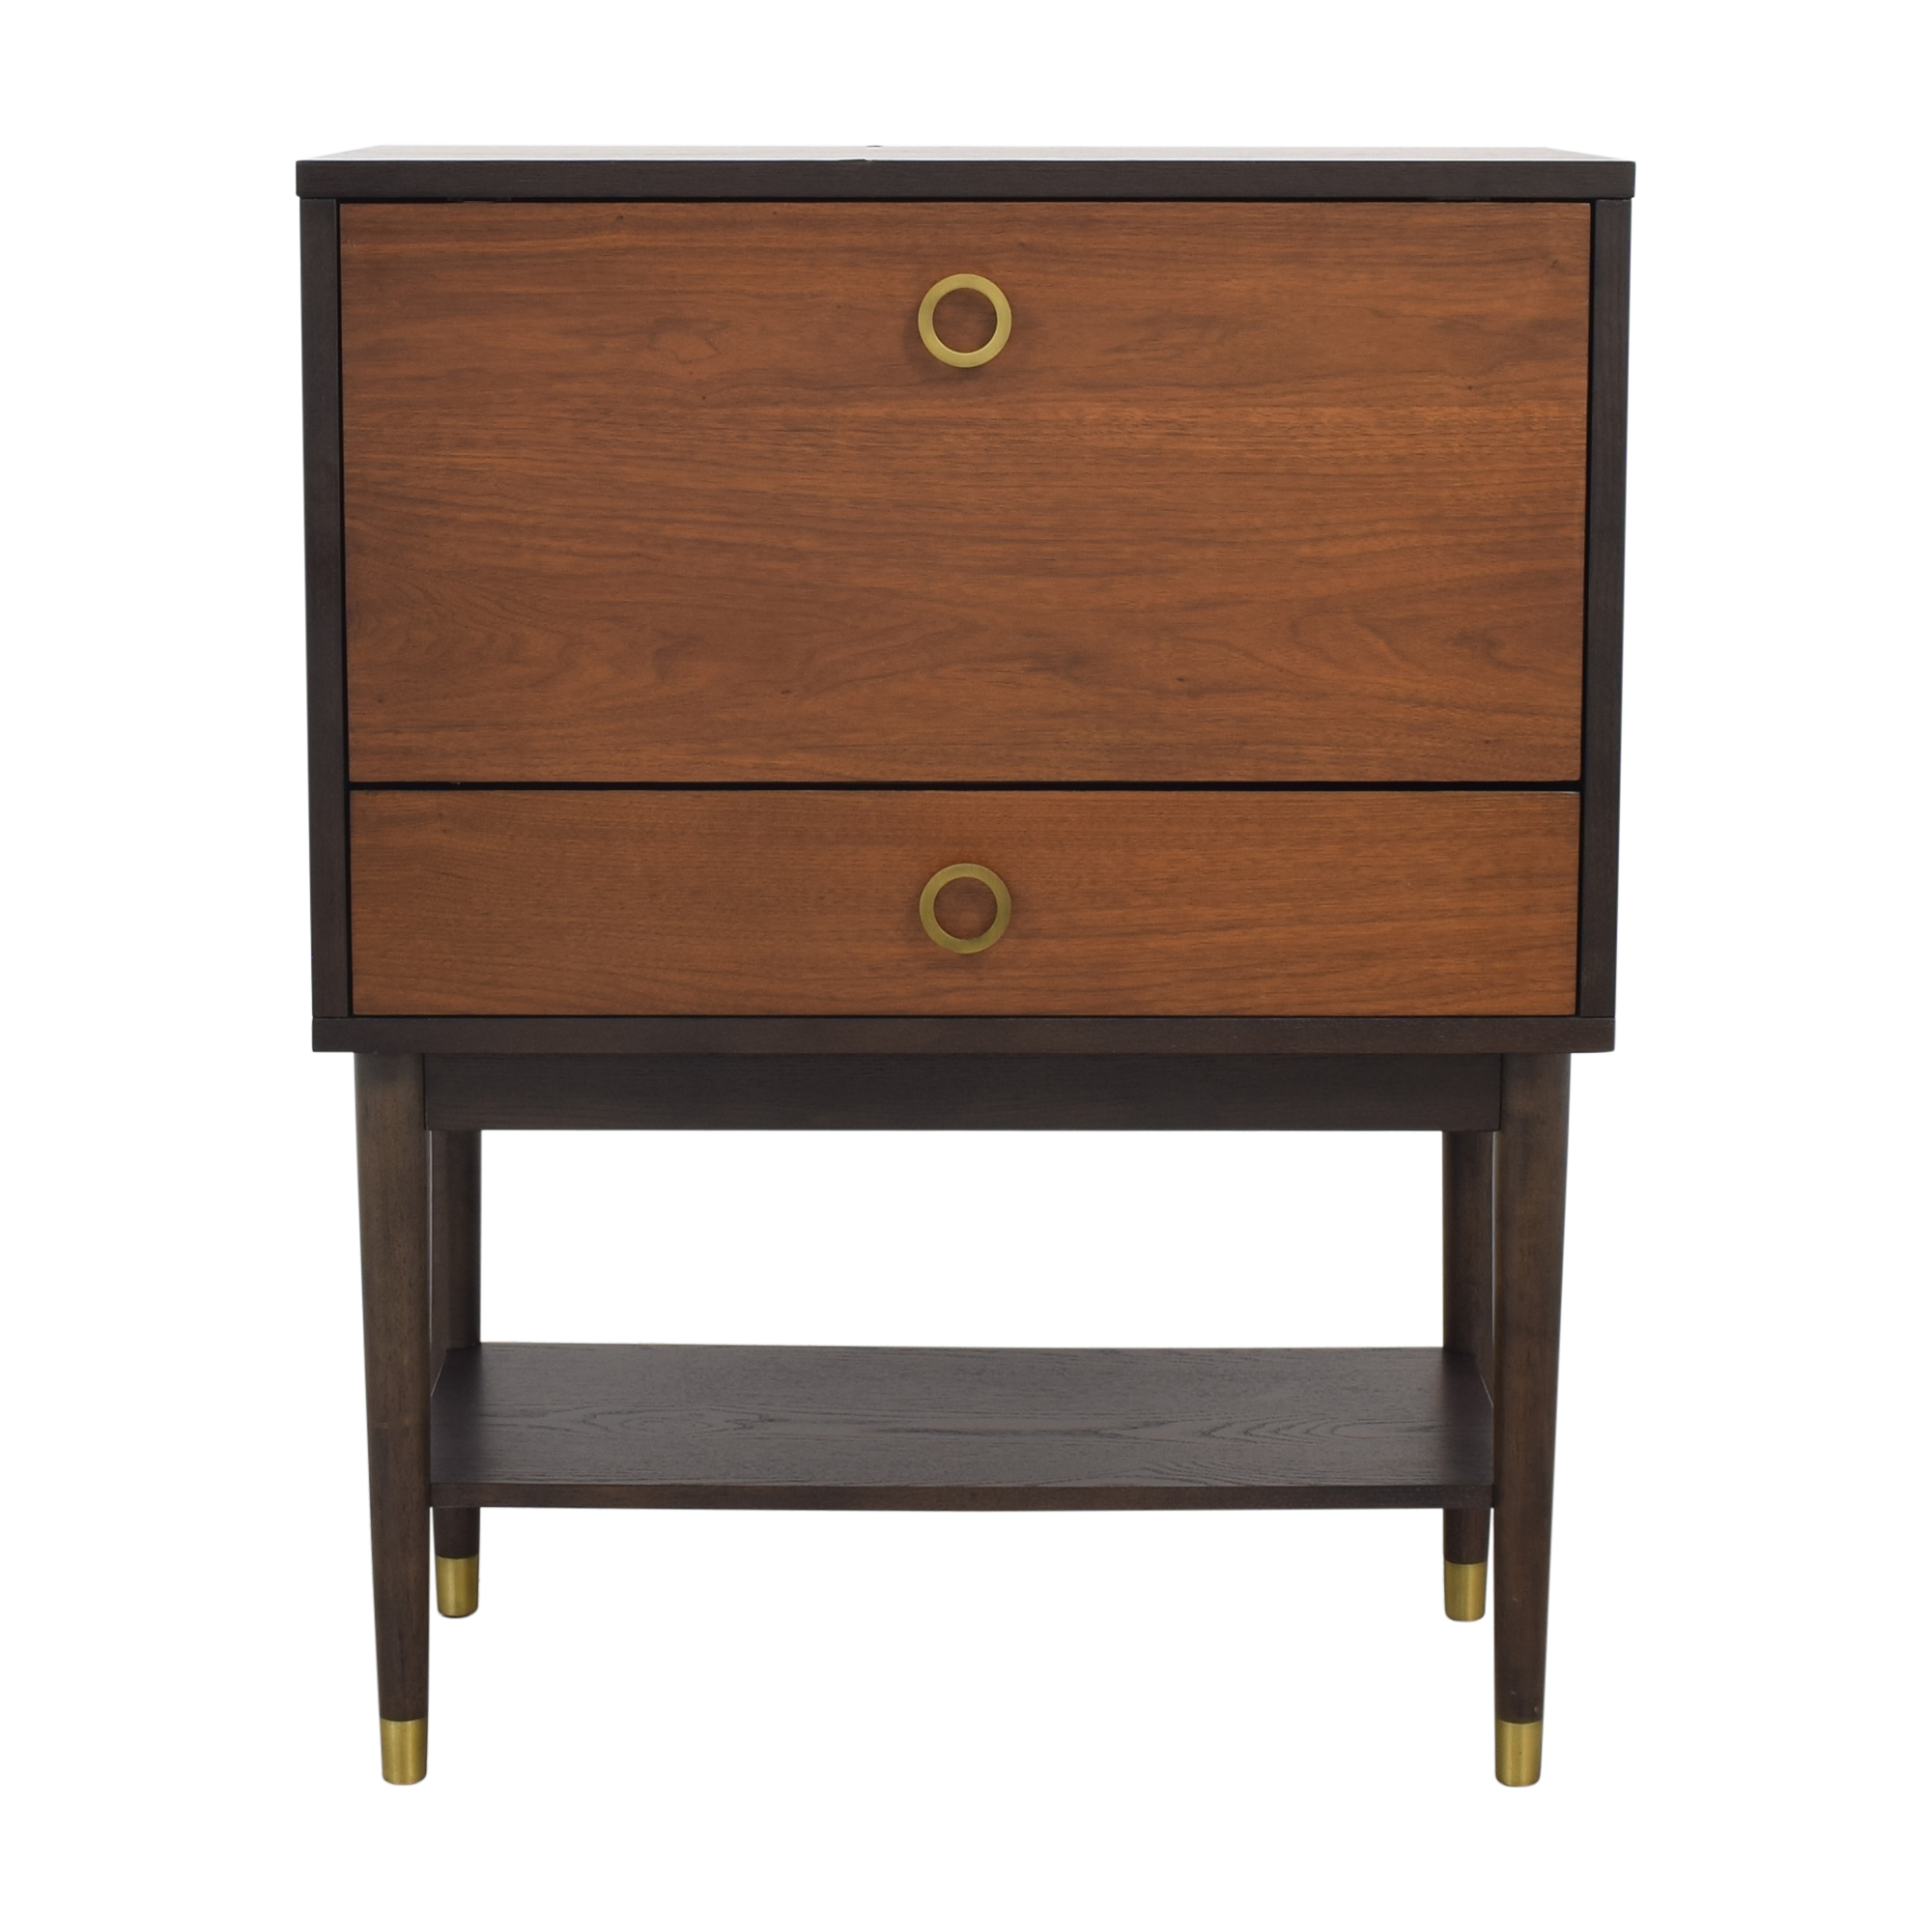 West Elm West Elm Dobson Flip Down Bar Cabinet on sale